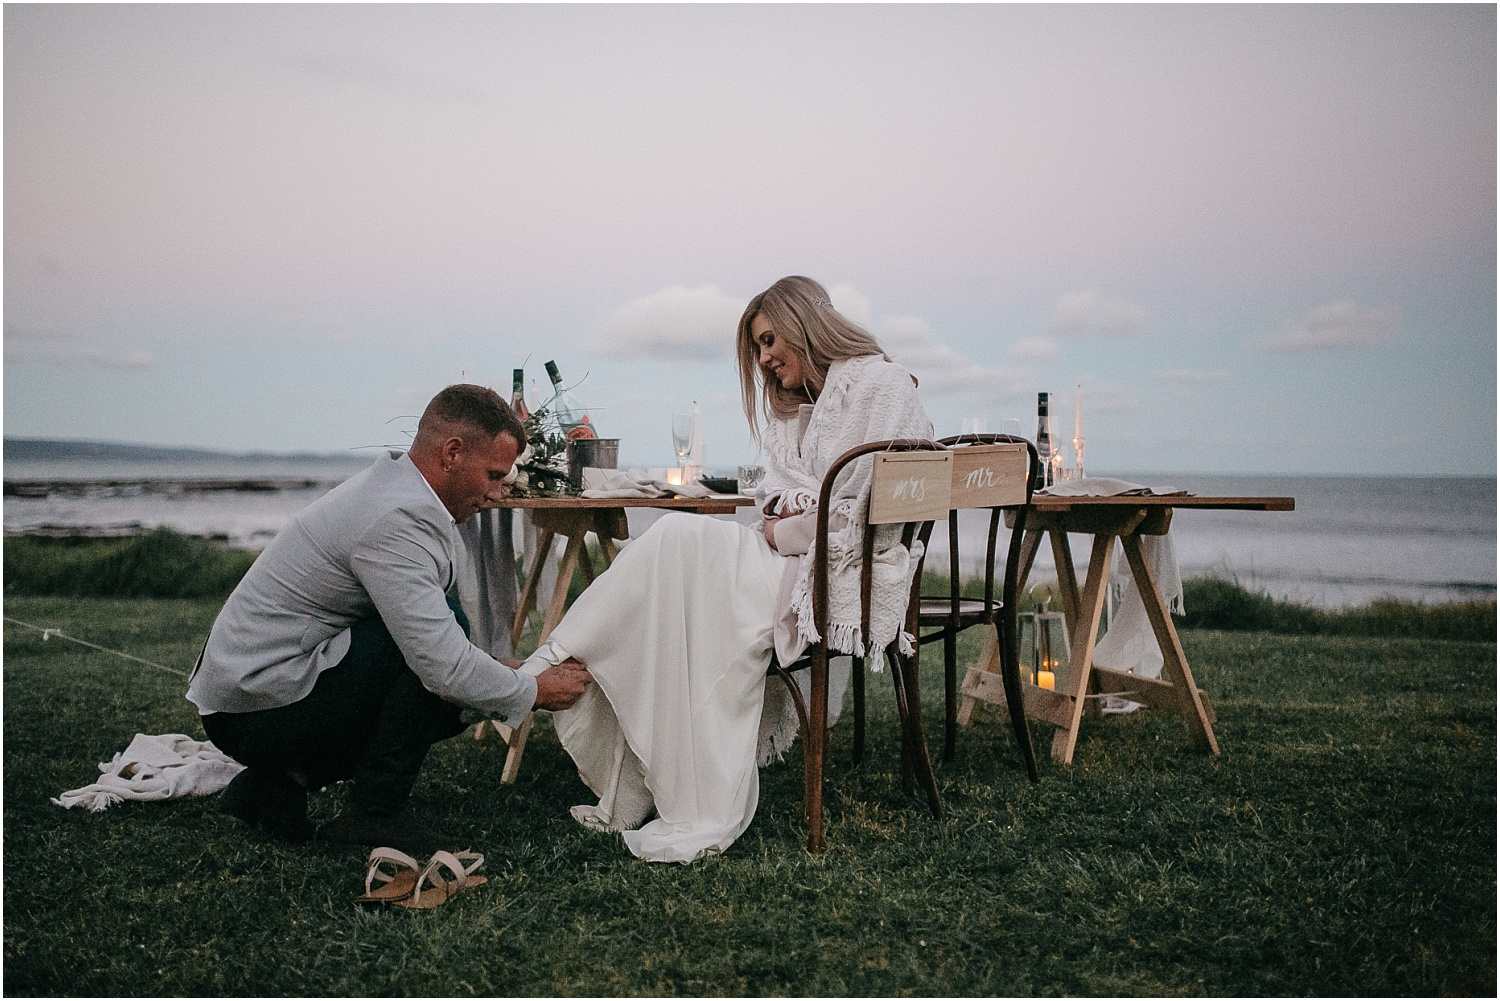 Renee and Ash's real elopement in Lorne on the Great Ocean Roadwith the ceremony at erskin falls._0129.jpg